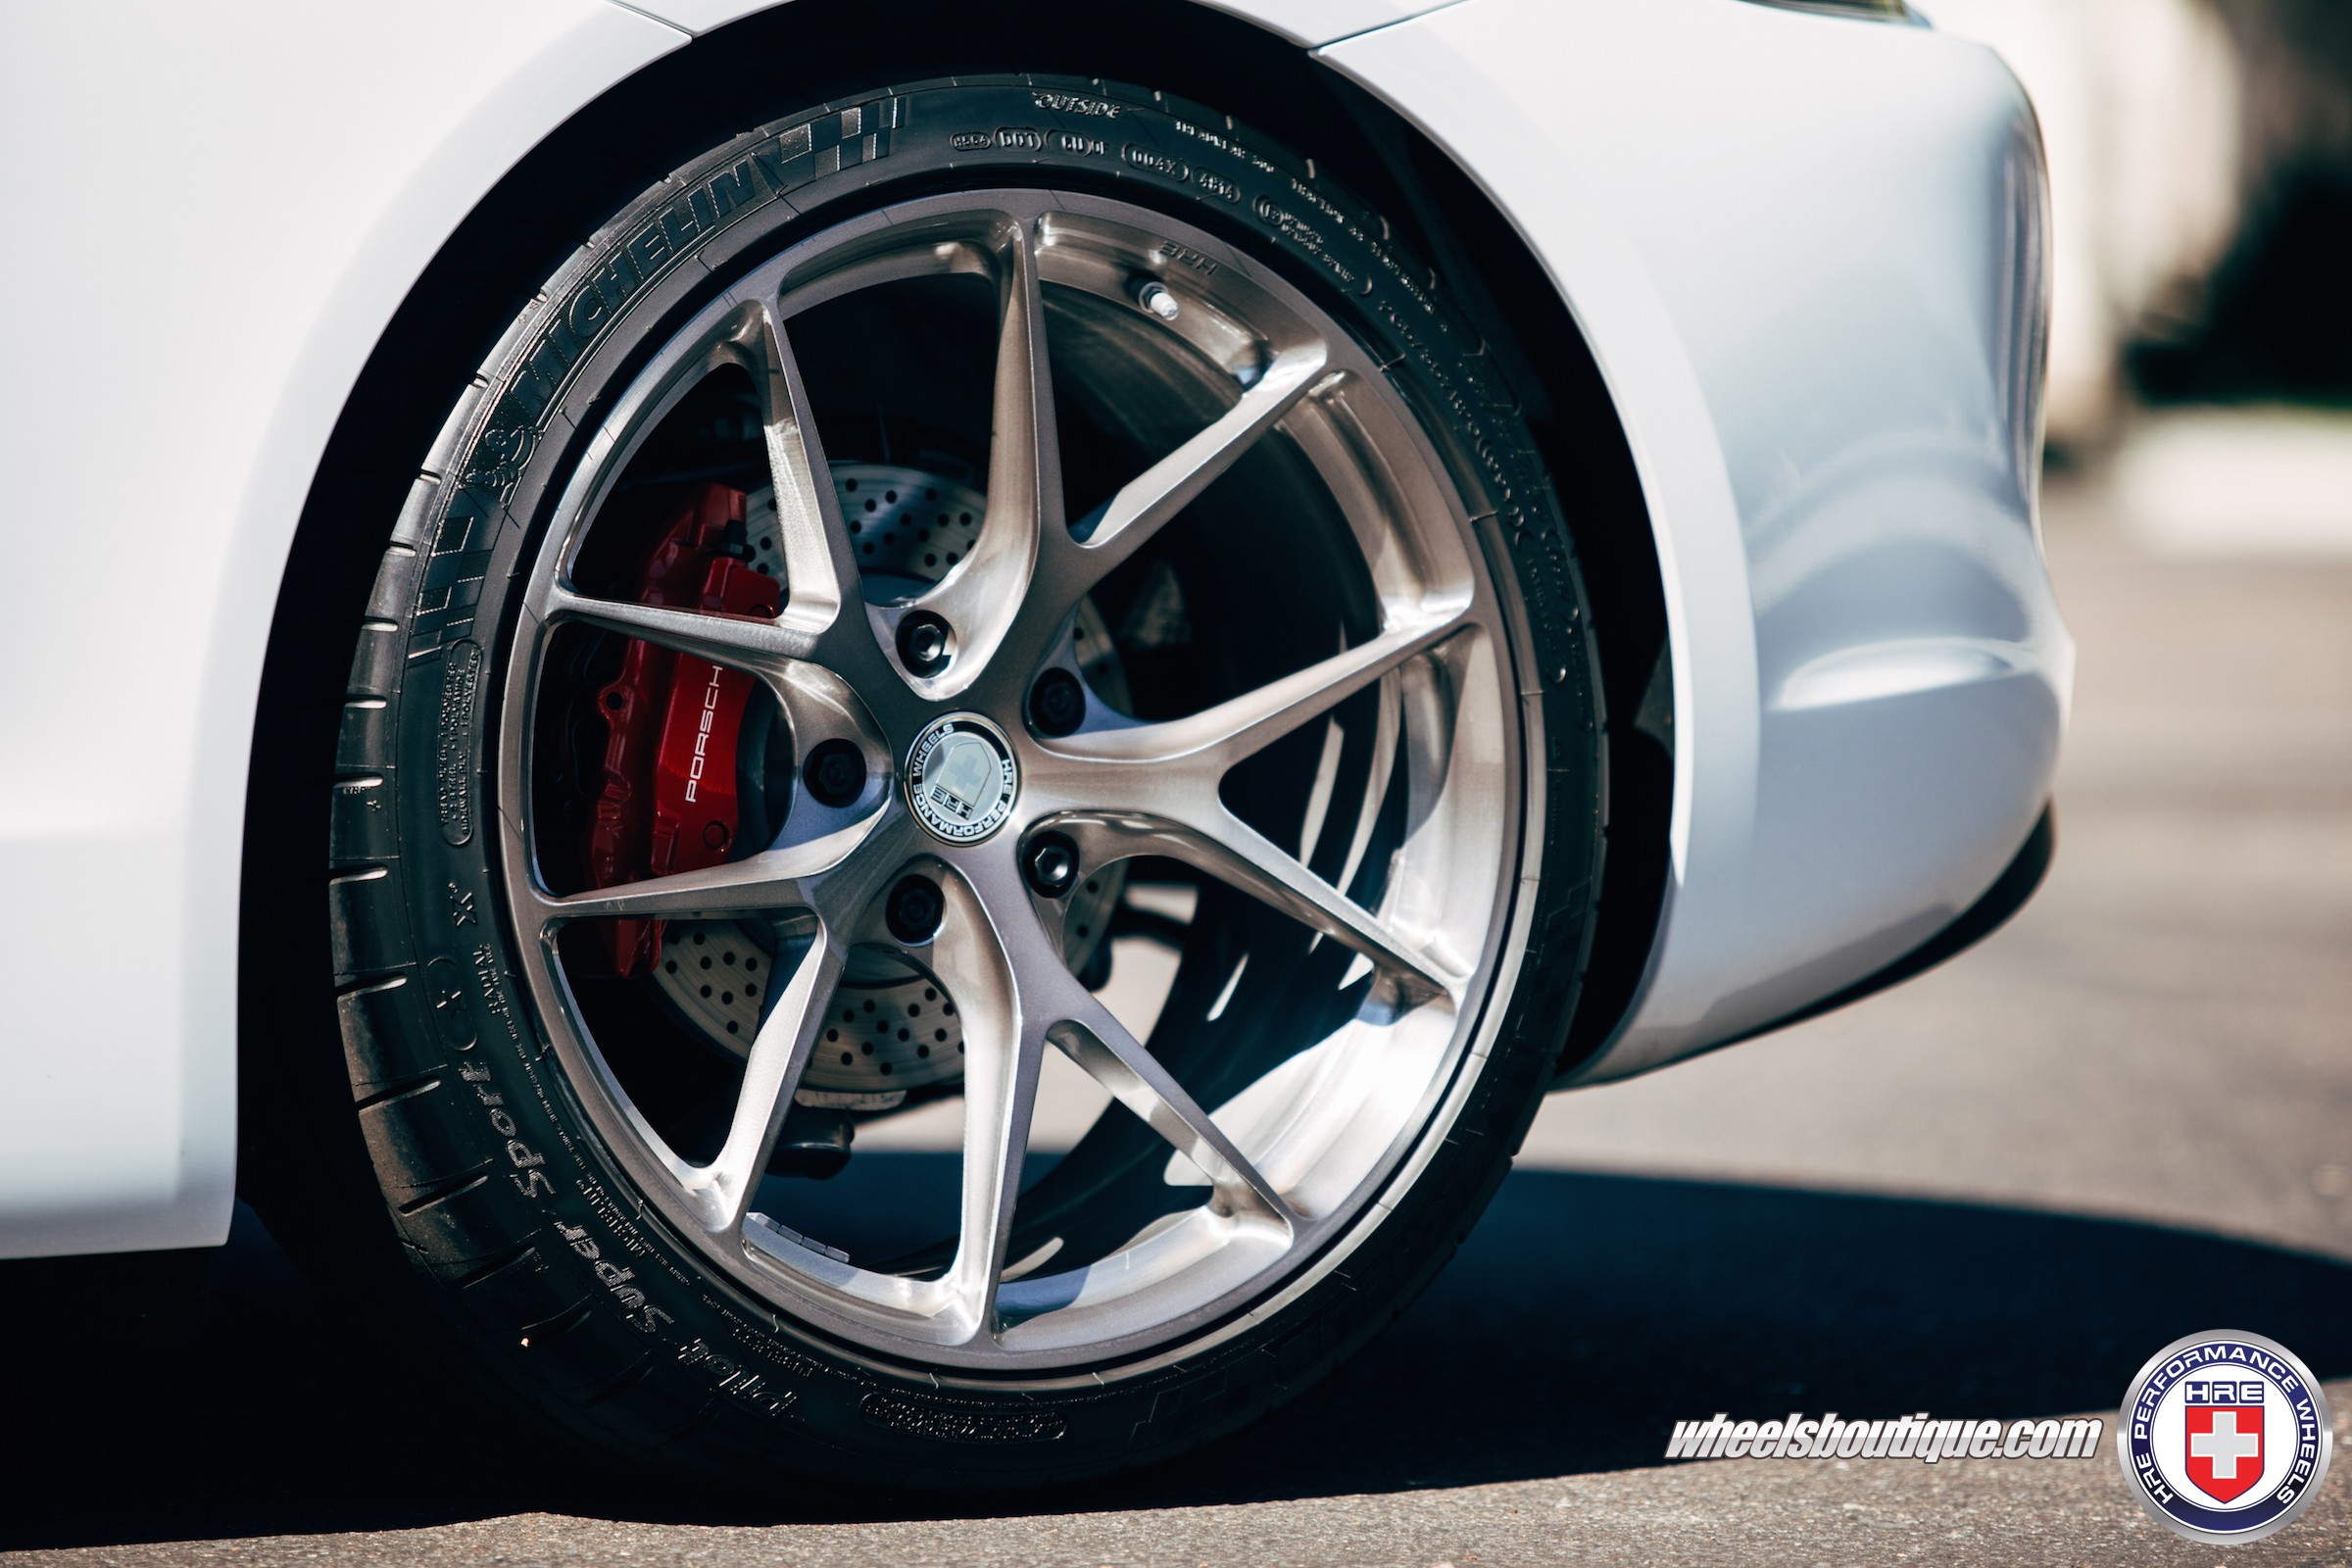 Tires For 20 Inch Rims >> Porsche Cayman GTS on HRE Wheels Looks Technical - Photo Gallery - autoevolution